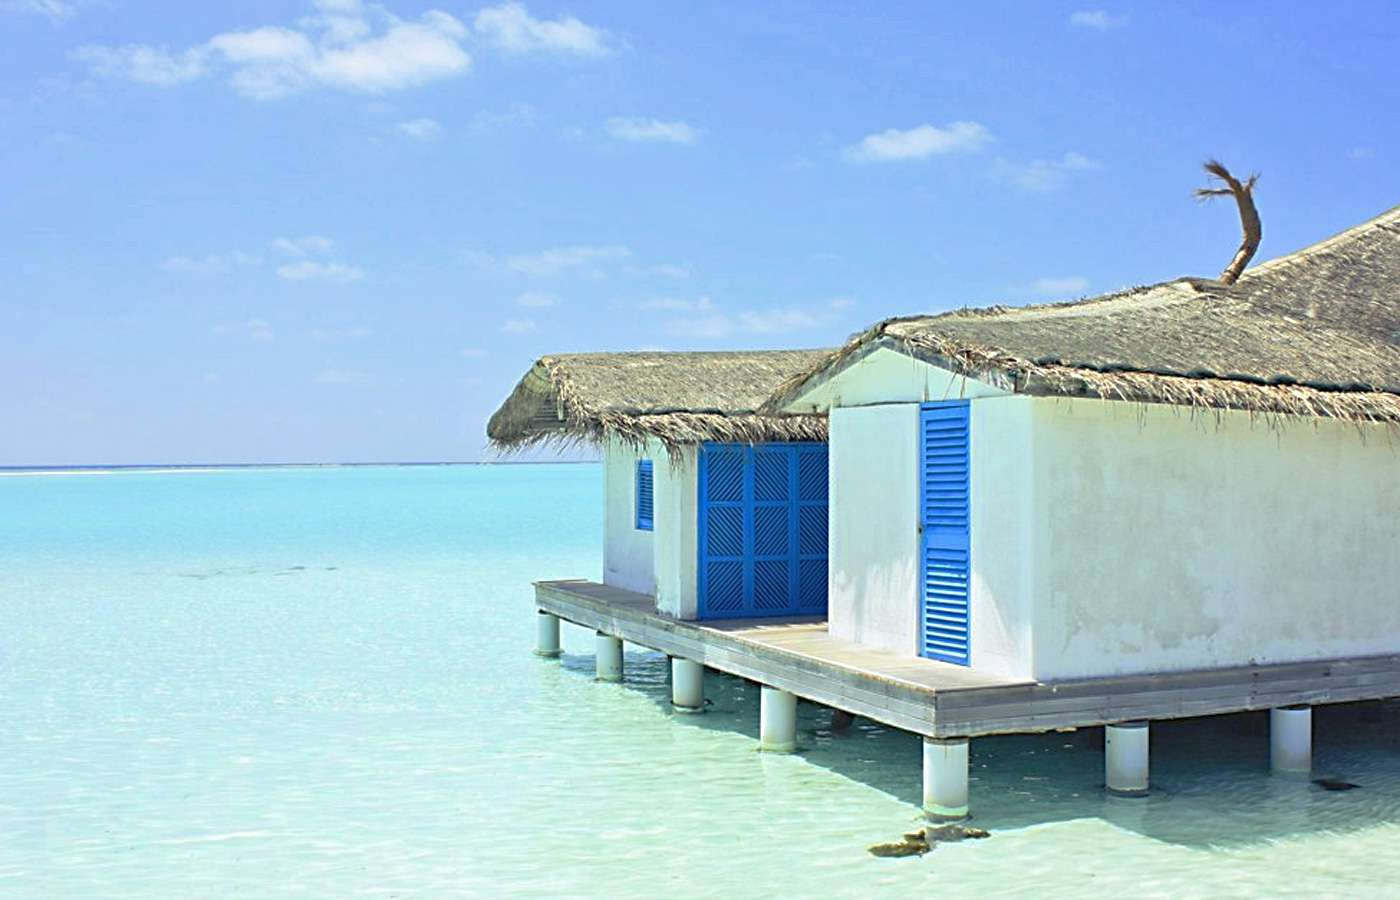 Wallpaper Wednesday: Maldives Shack